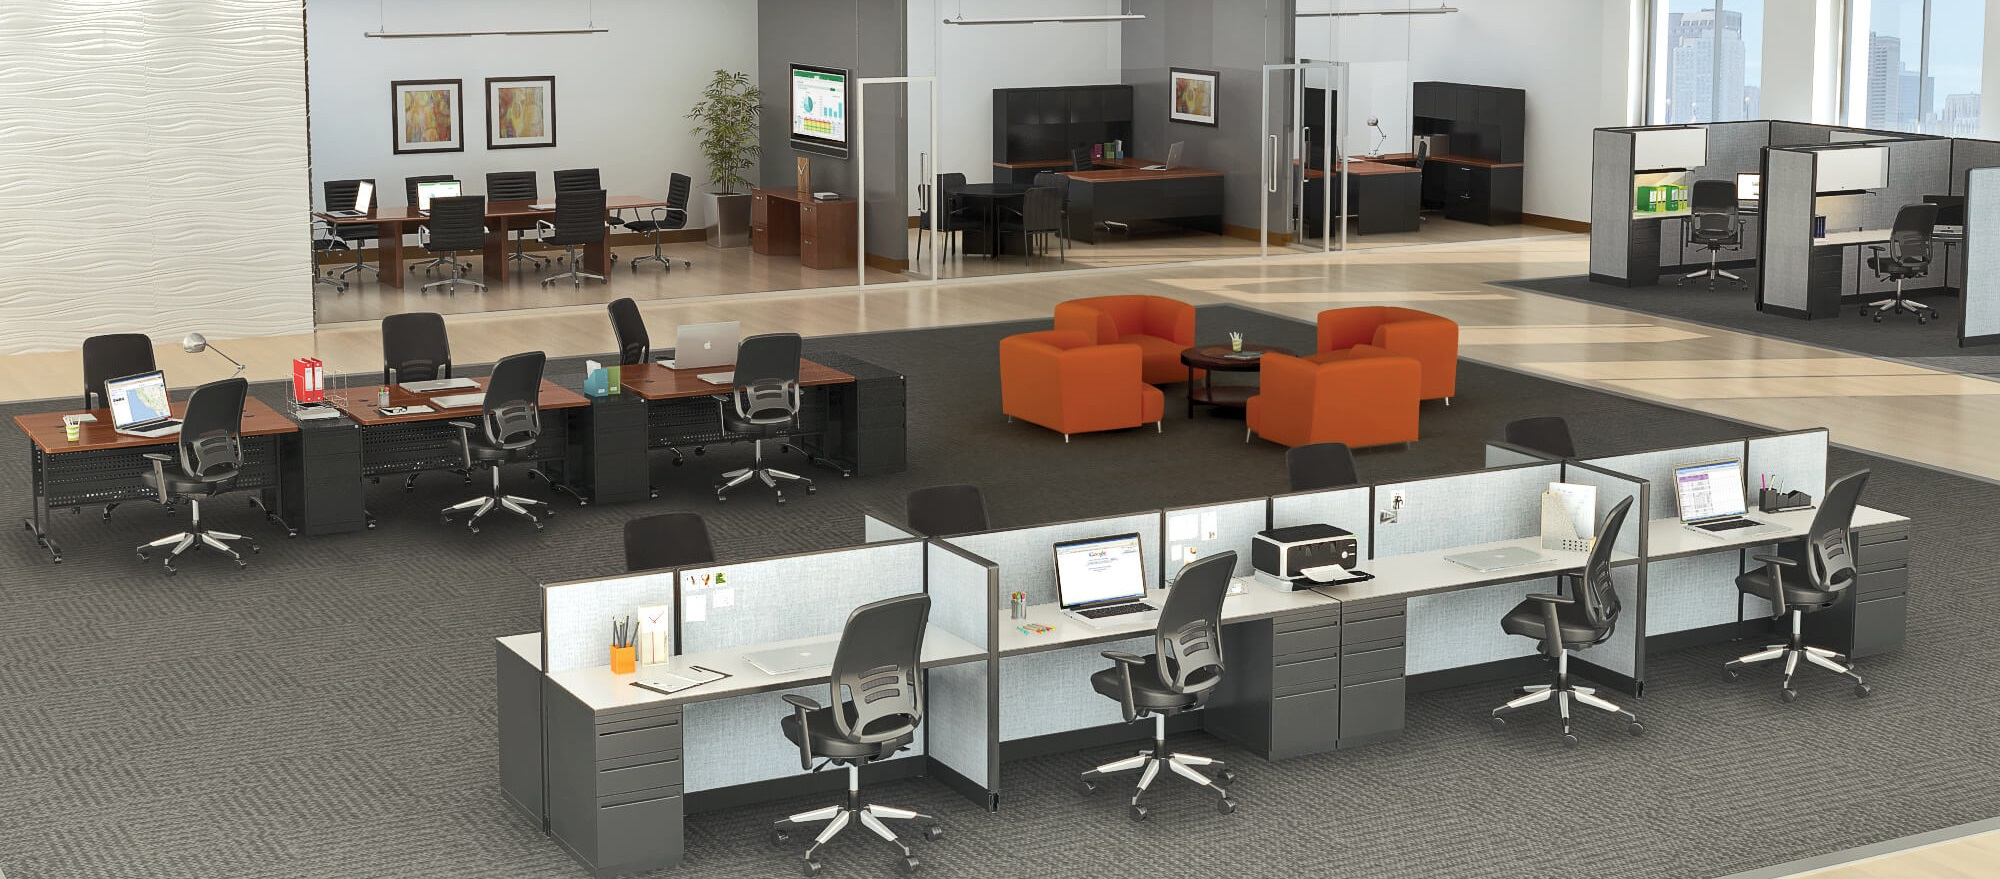 commercial desks linewoodwhite solo desk envoy executive furniture product office ddk category cupboard blacken